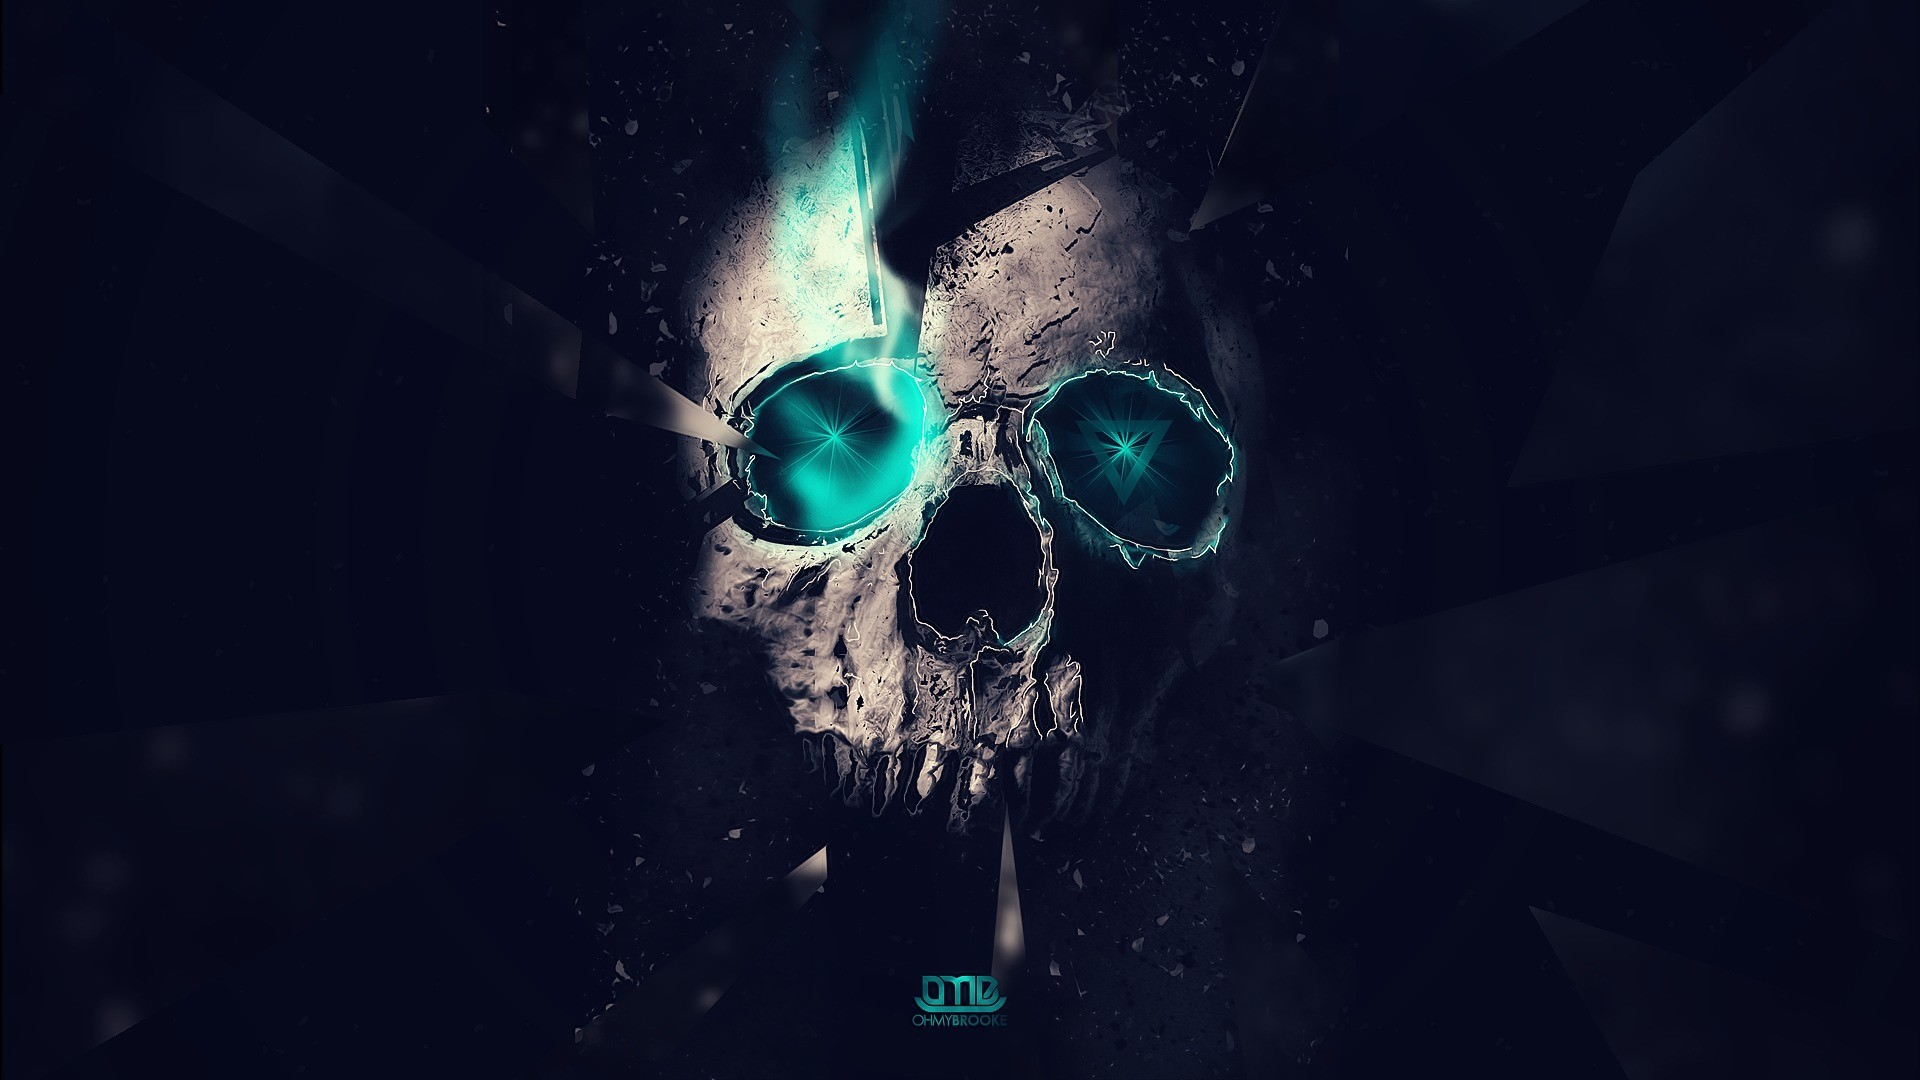 skull, abstract. blue lights, Triangles, lighting, space, hd wallpaper